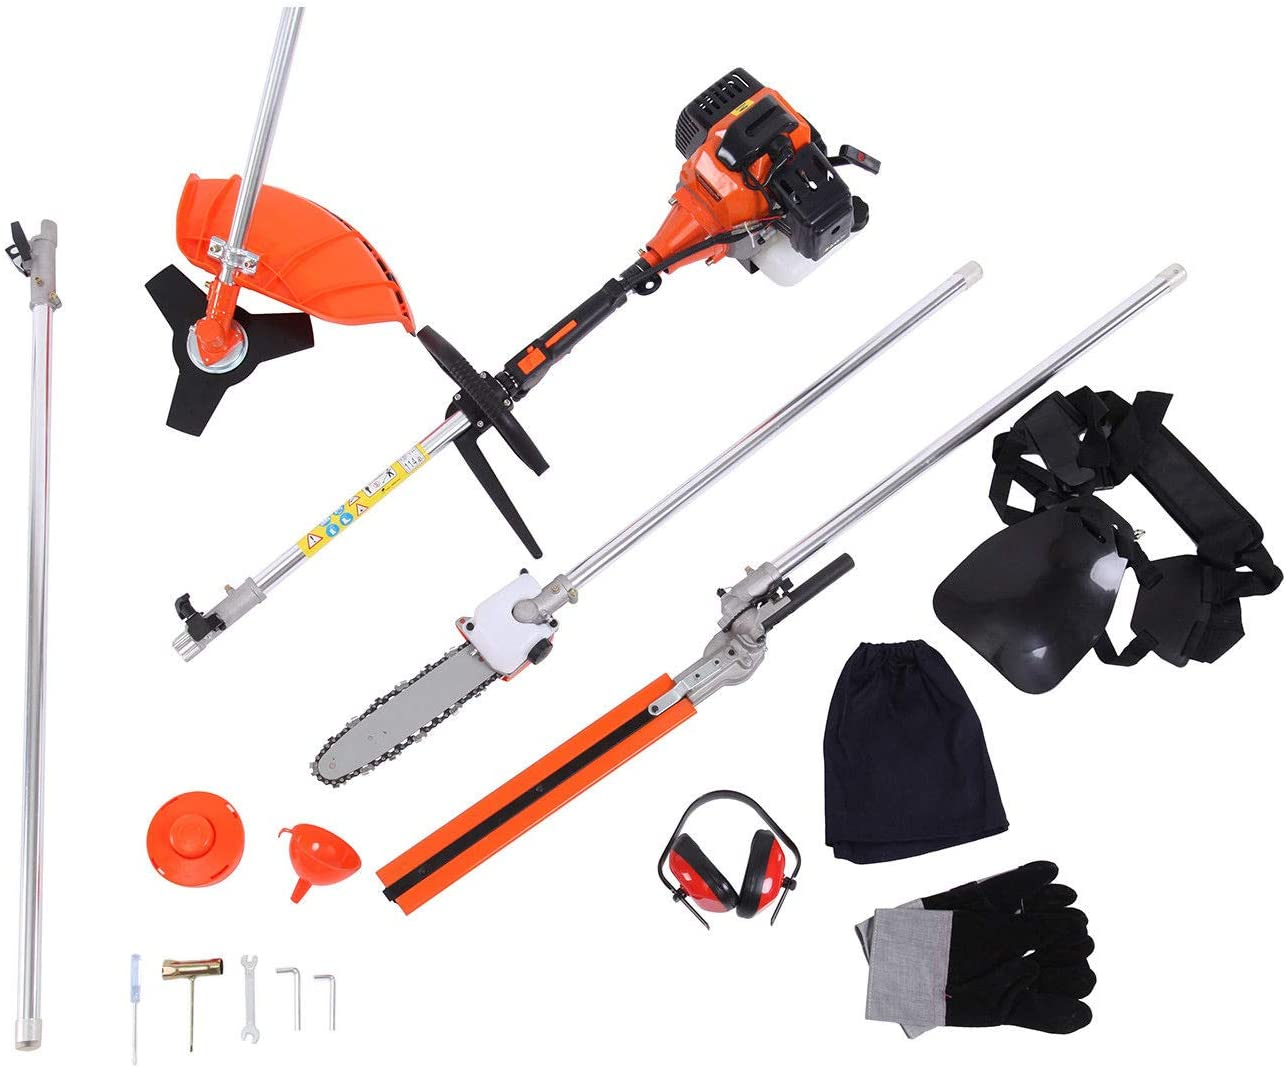 Vigenu 5 Functional in 1 Hedge Trimmer 52cc Petrol Engine Chainsaw Cutter Pole Saw Brush Outdoor Tools